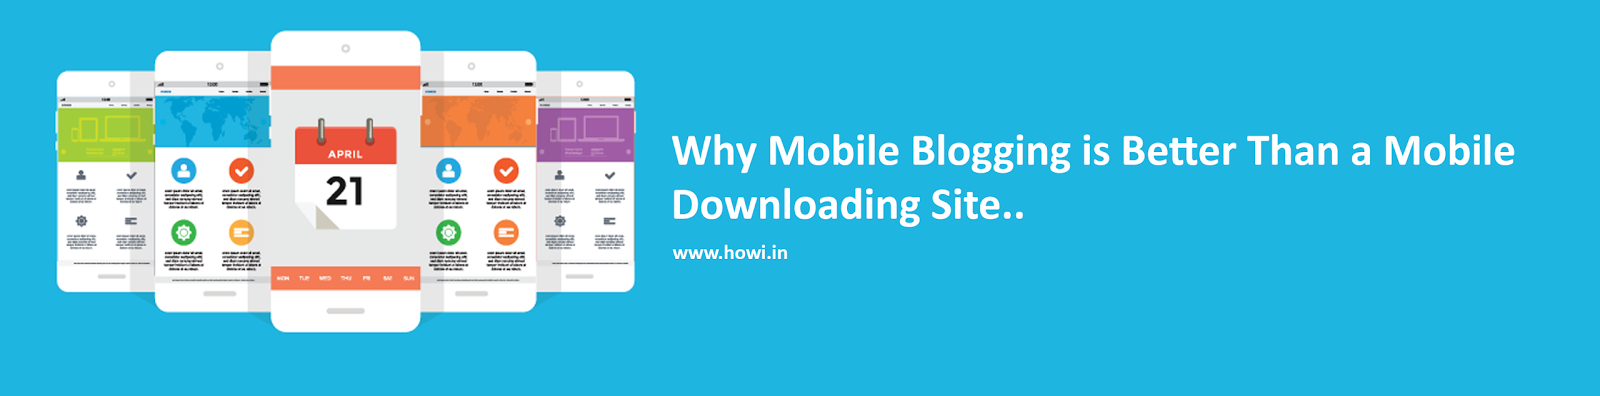 Why Mobile Blog Better Than a Mobile Downloading Site